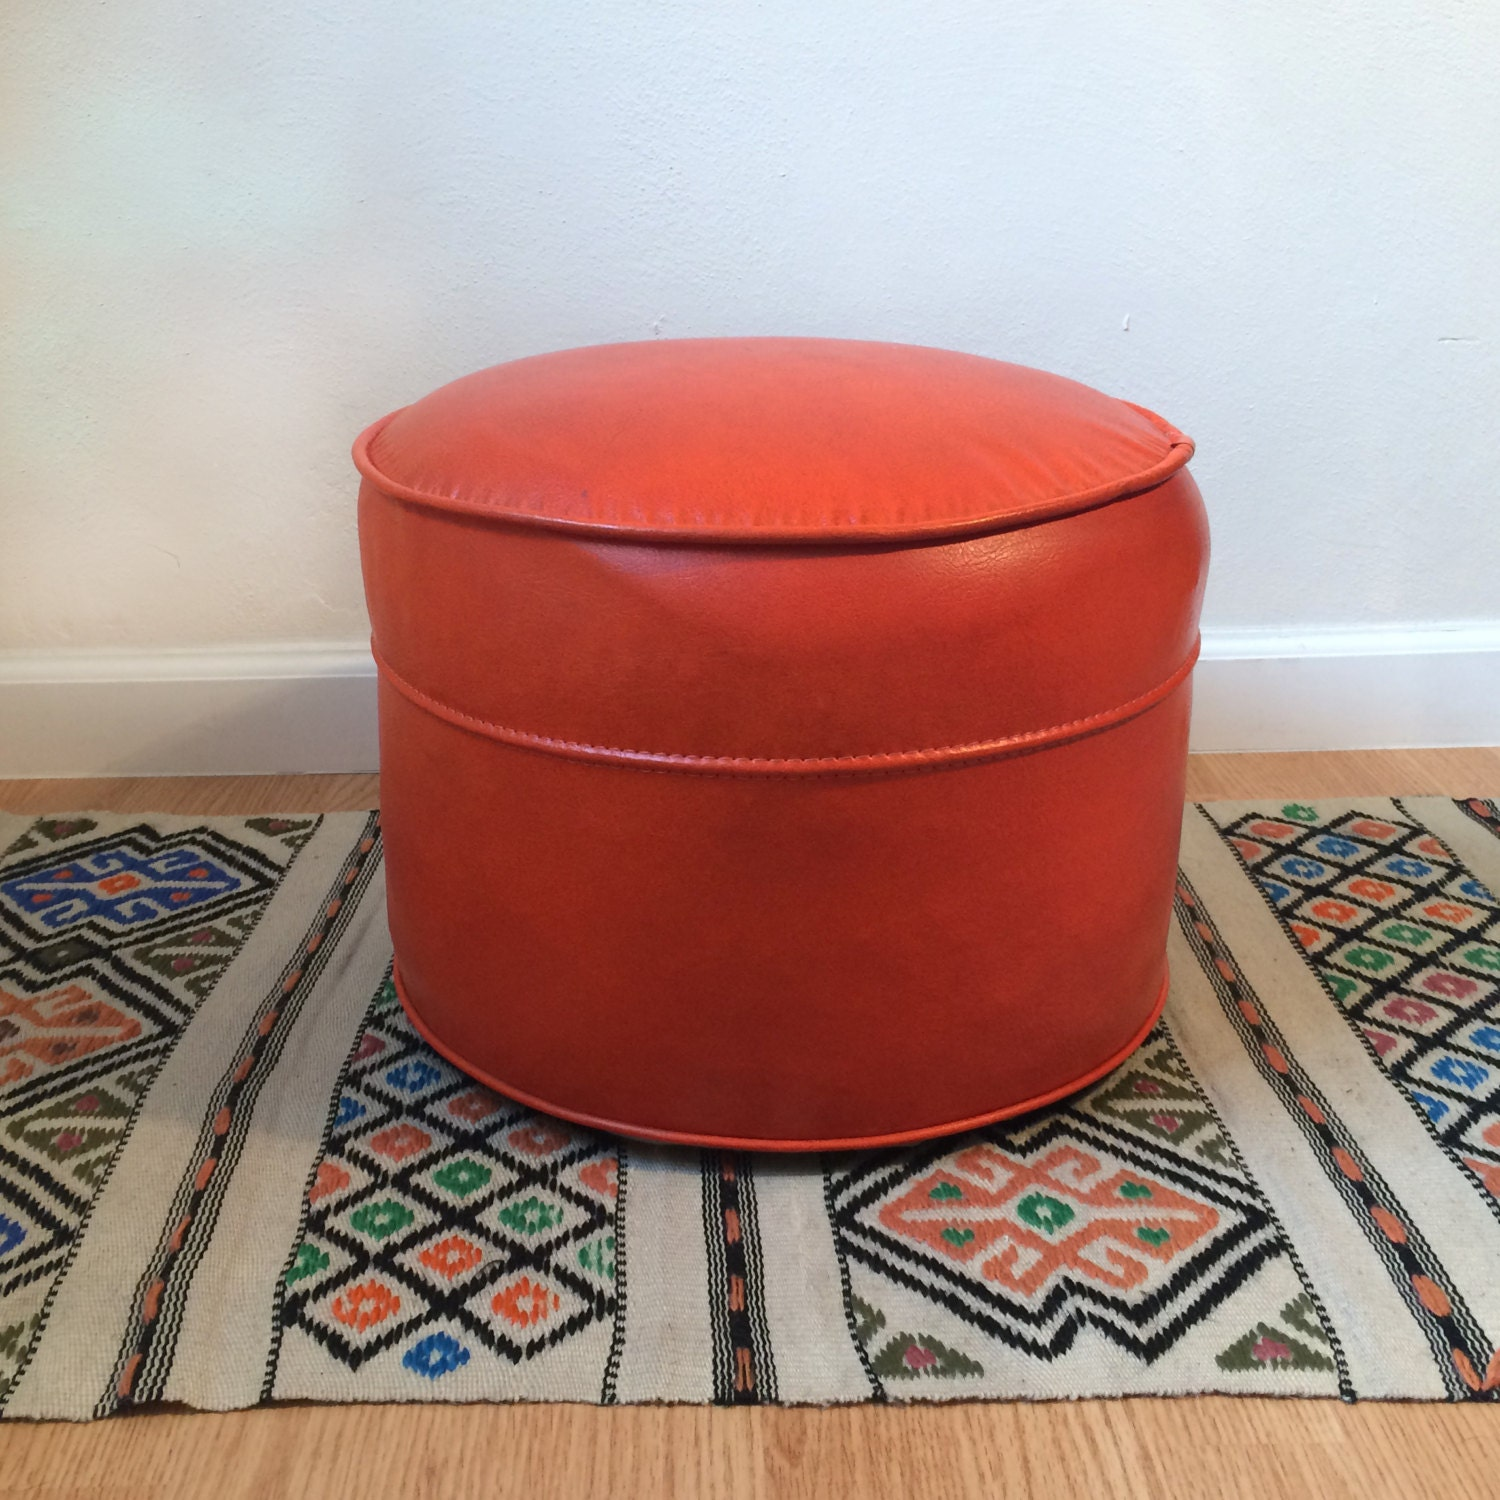 Vintage Red Pouf Ottoman Orange Hassock Stool